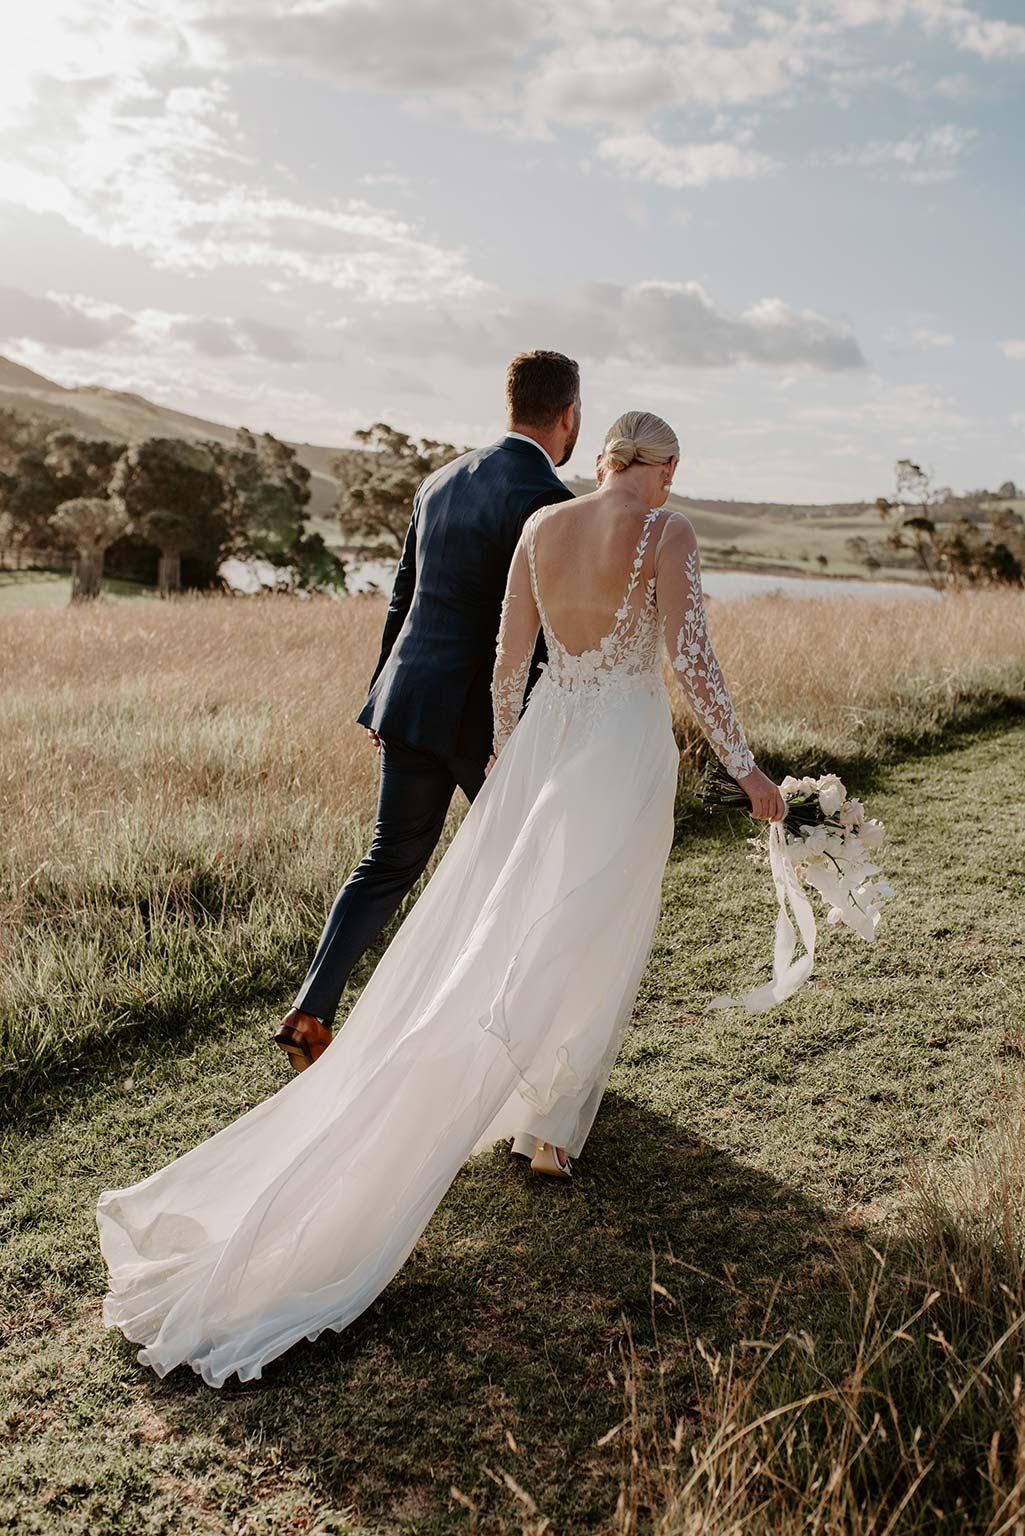 Vinka Design Features Real Weddings - bride and groom walk next to the ocean - bride wearing a bespoke Makaira gown with silk-chiffon and tulle overskirt giving her a beautiful train which could be removed later on to reveal a floor length party dress